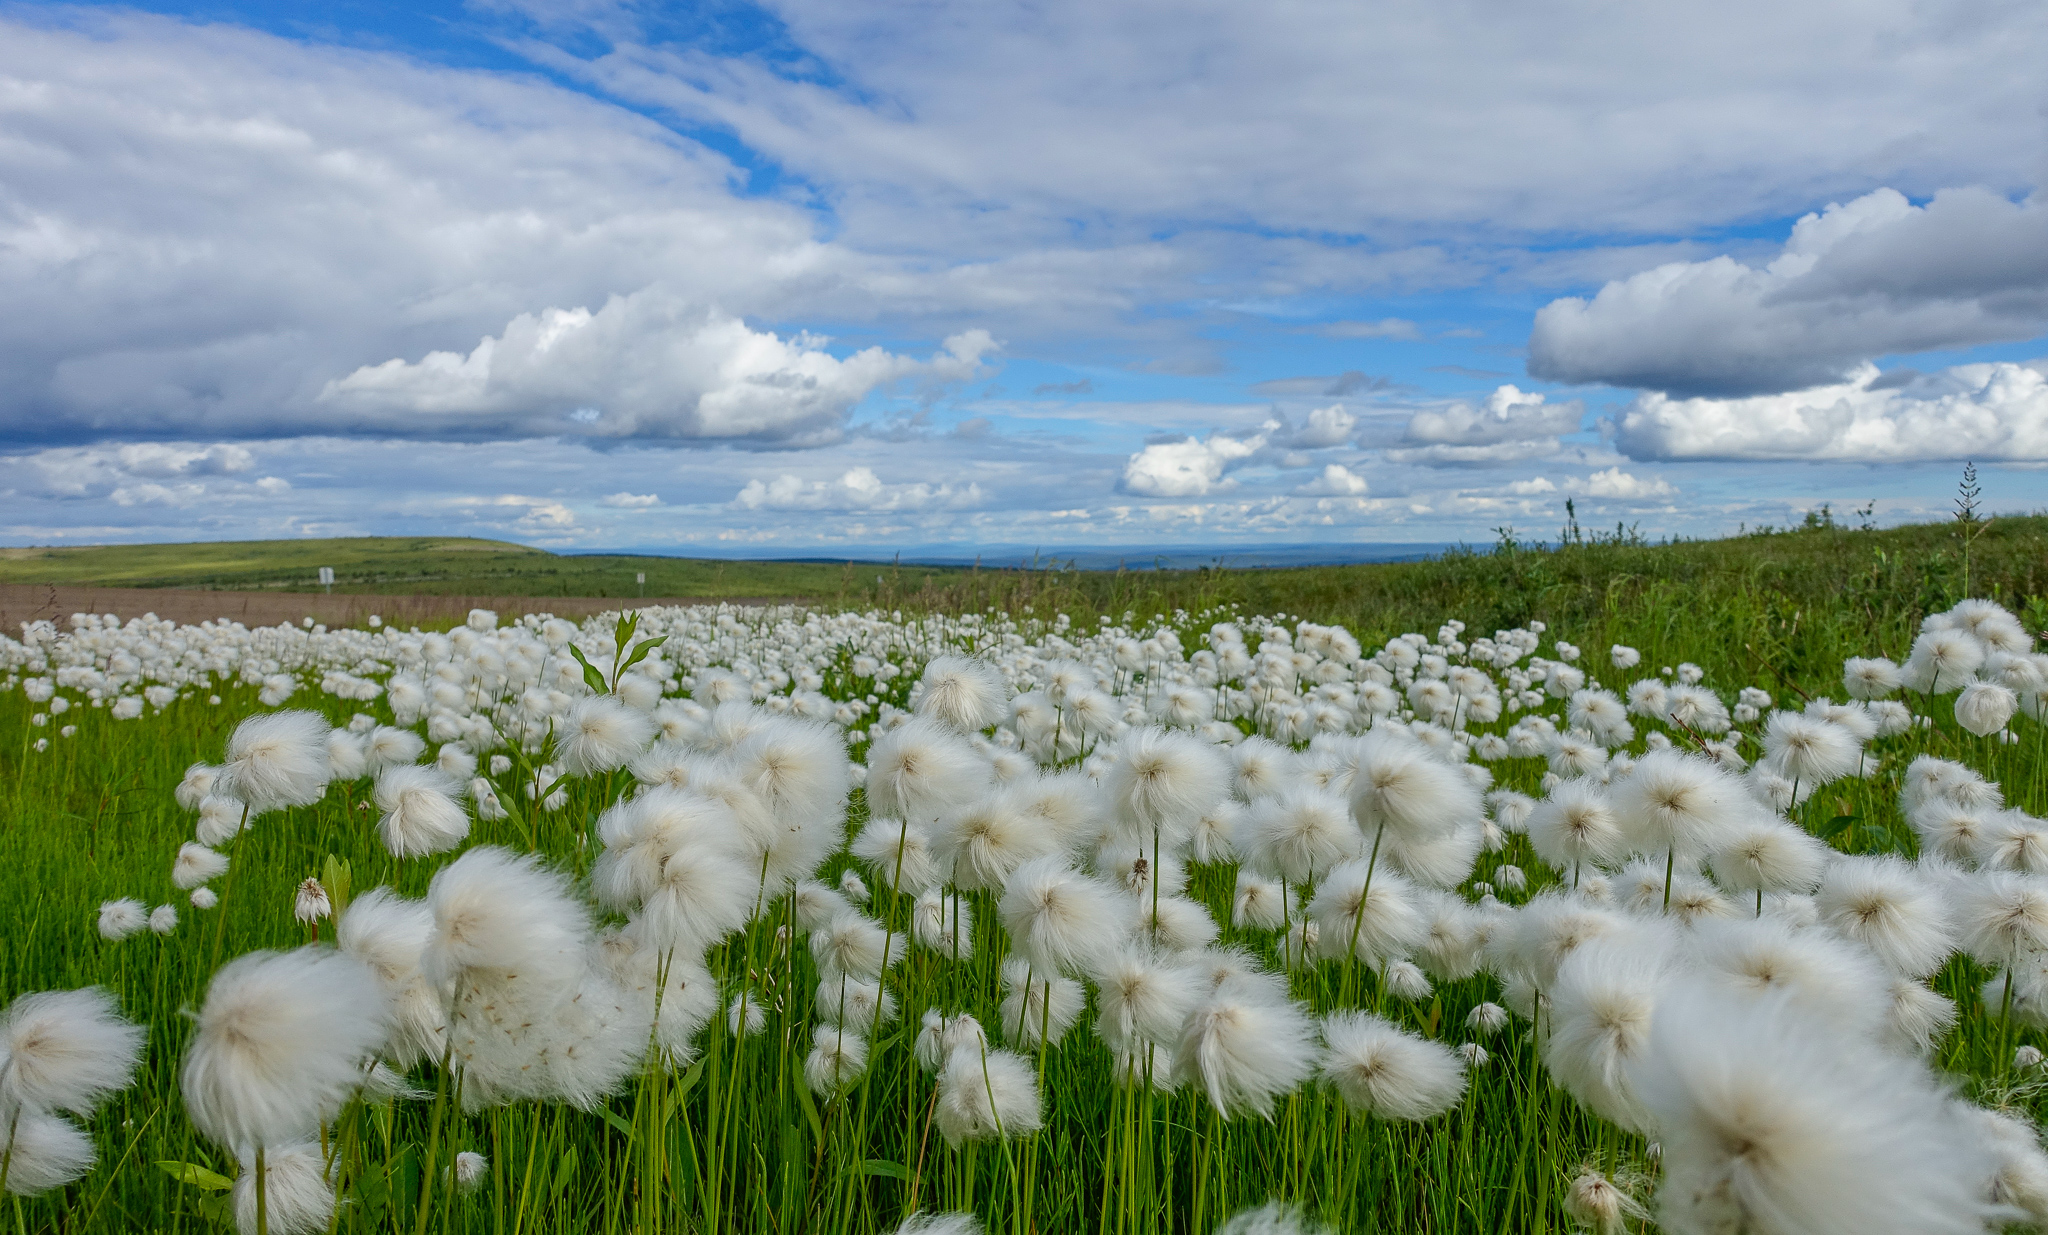 COTTONGRASS GROWING BESIDE THE ROAD.